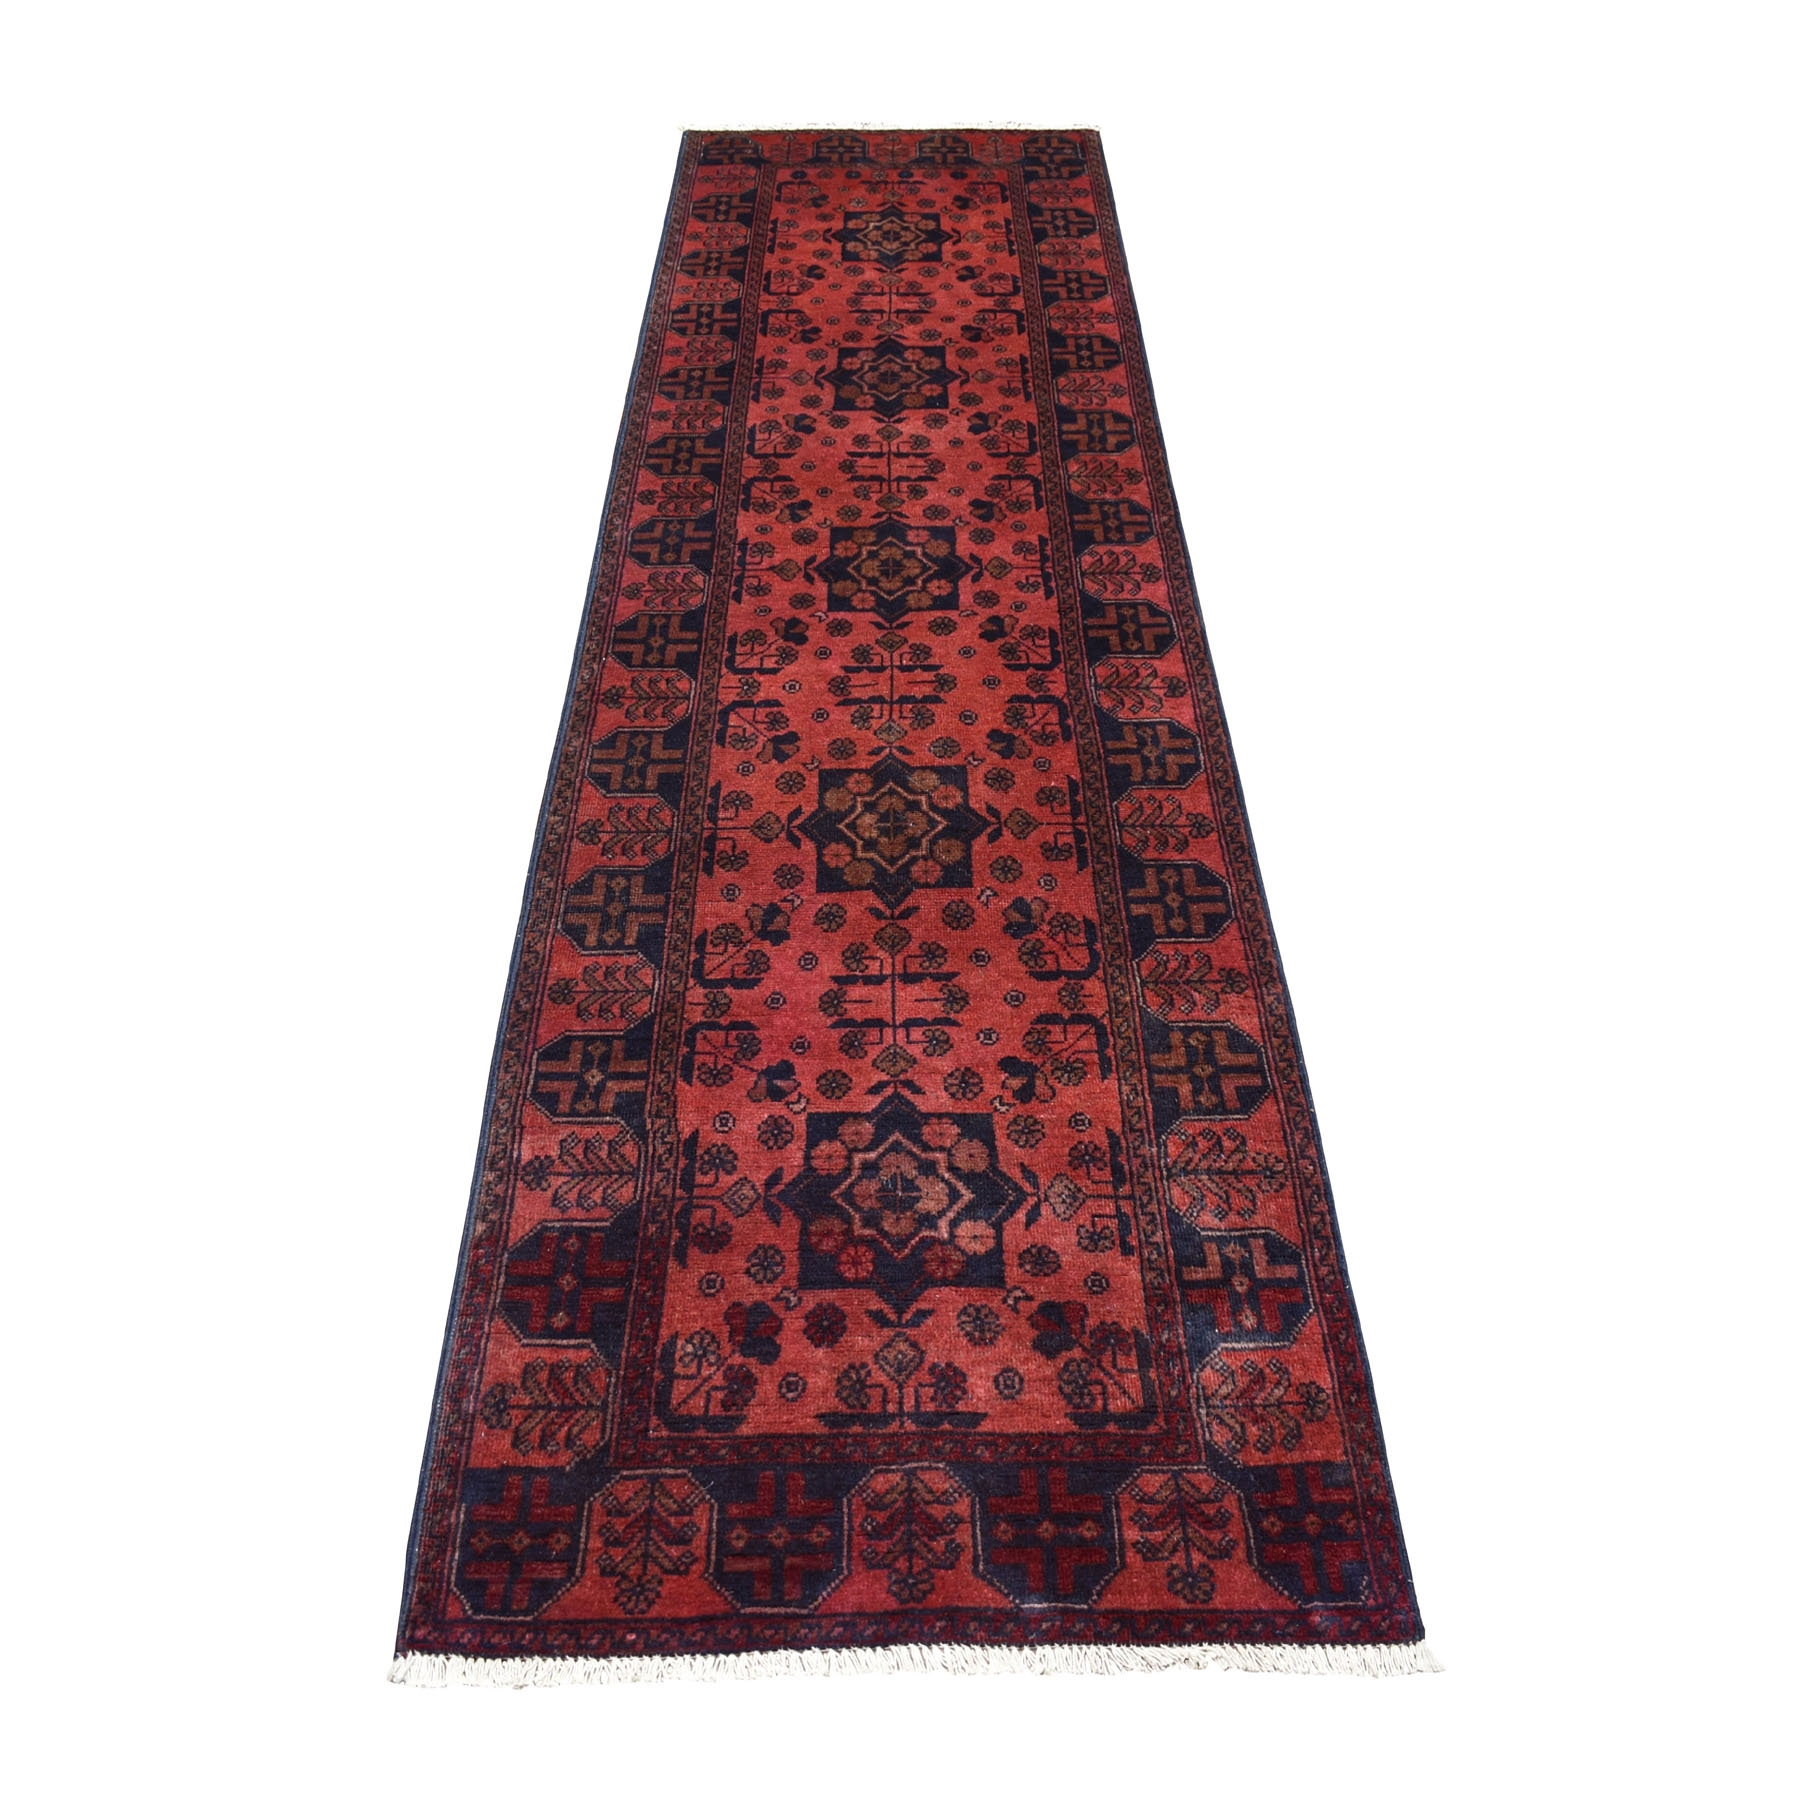 "2'8""X9'5"" Deep And Saturated Red Geometric Afghan Andkhoy Runner Pure Wool Hand Knotted Oriental Rug moaec77e"